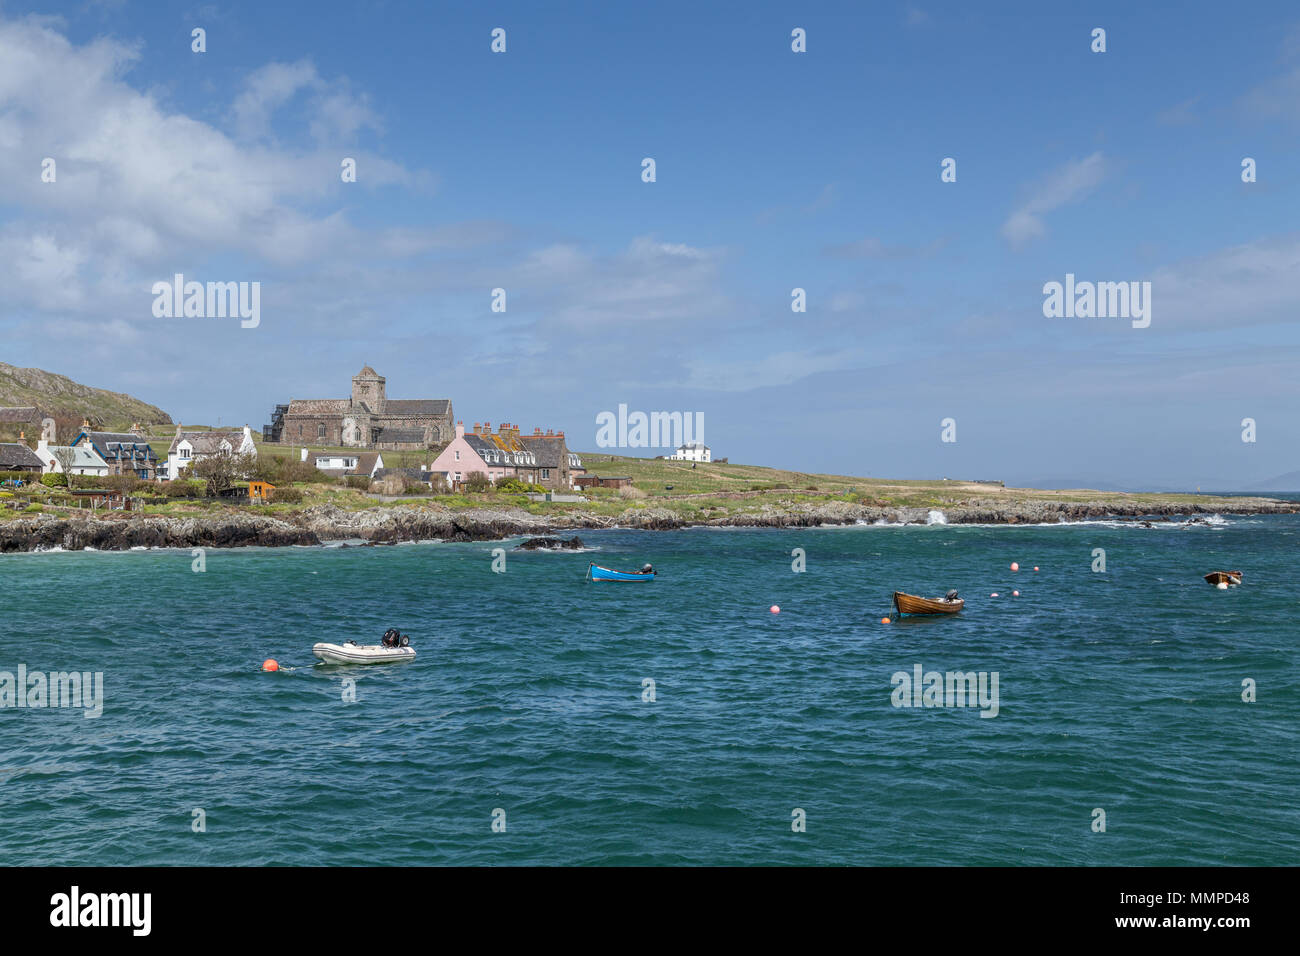 Baile Mòr on the Isle of Iona taken from the Calmac ferry en route from the Isle of Mull to Iona, Argyll and Bute on the Inner Hebrides, Scotland, UK - Stock Image